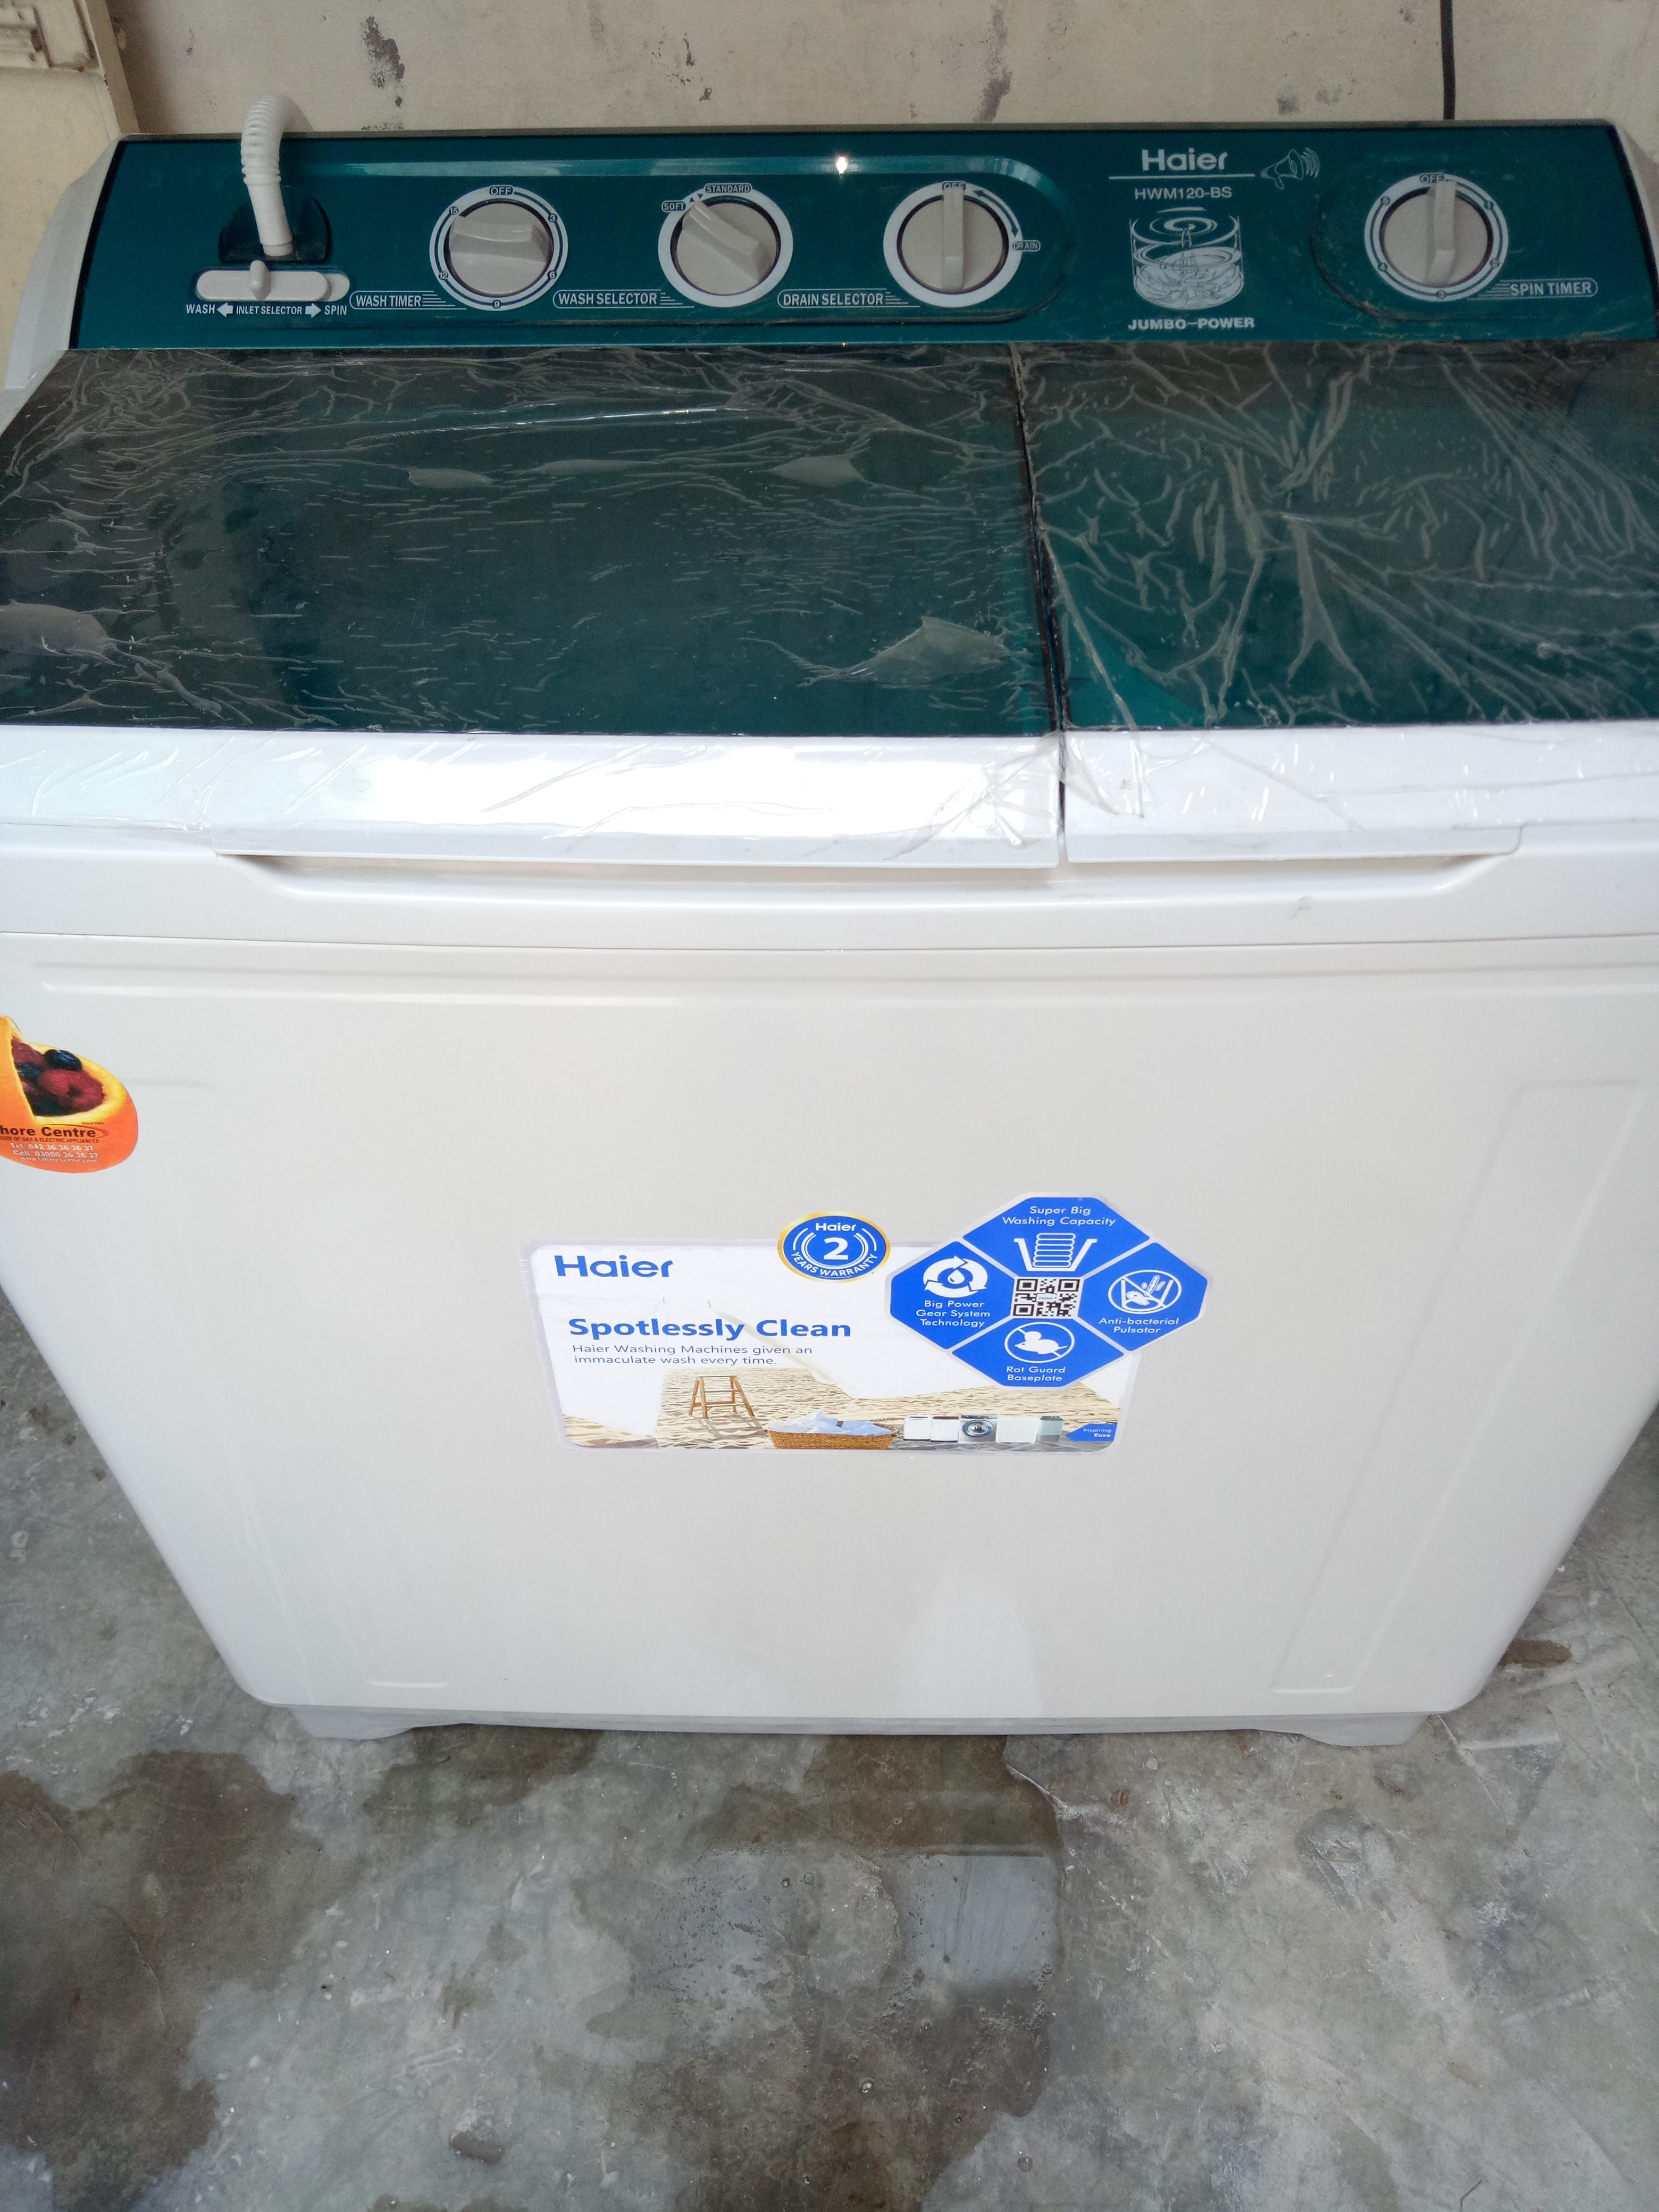 How To Fix My Washing Machine Top 68 Reviews And Complaints About Haier Washers Dryers